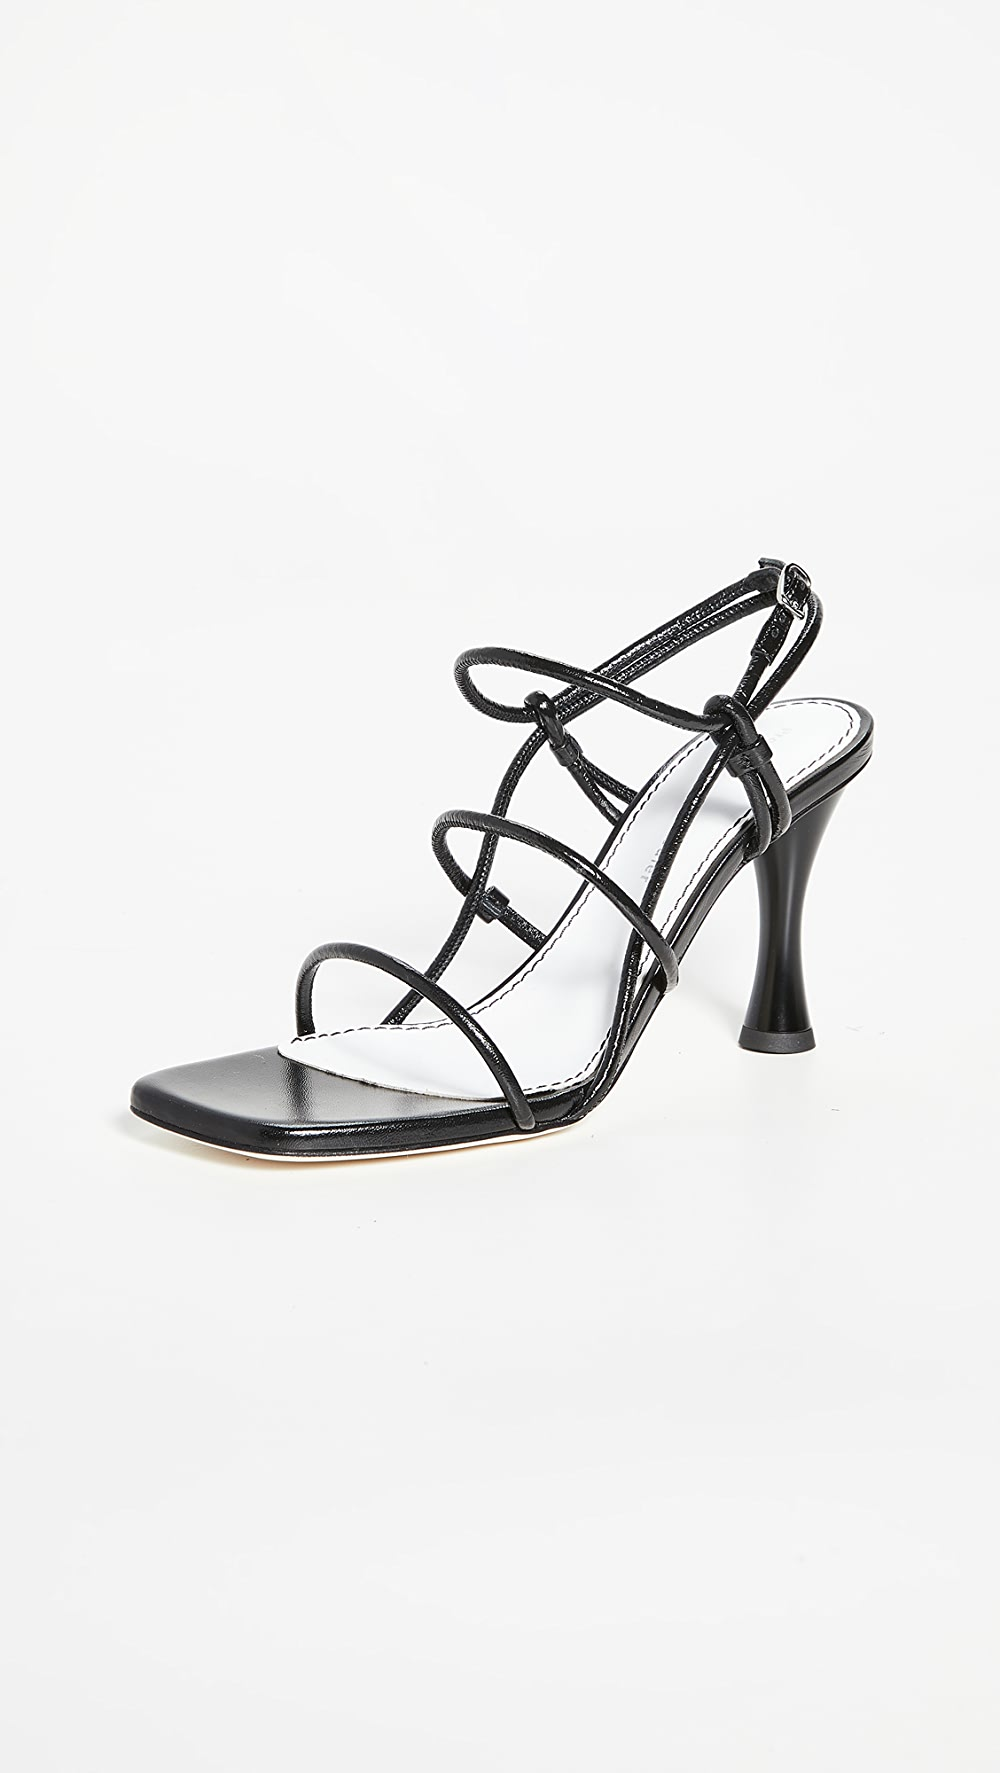 Creative Proenza Schouler - Strappy Sandals Easy To Lubricate